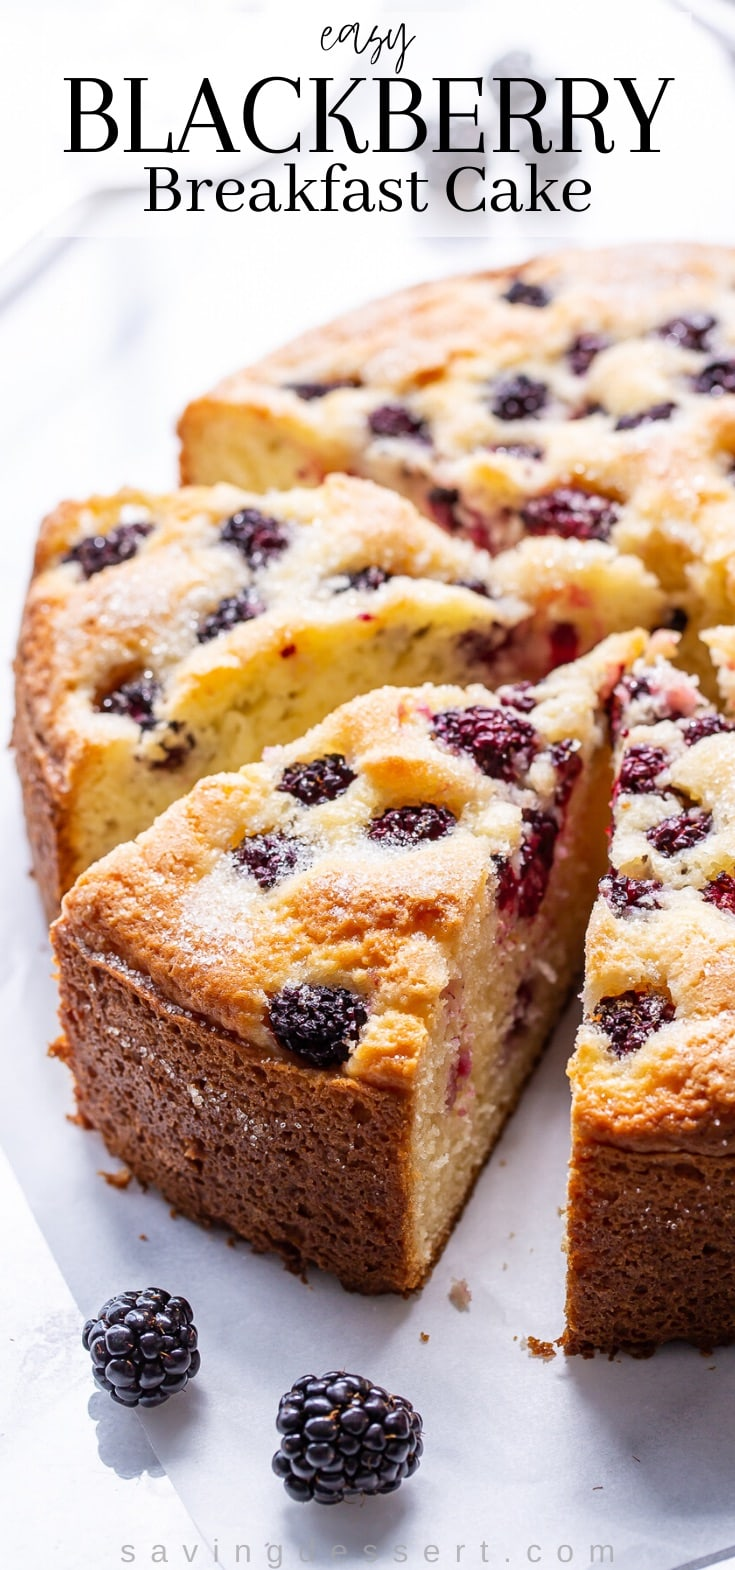 A side view of a blackberry breakfast cake sliced into individual servings